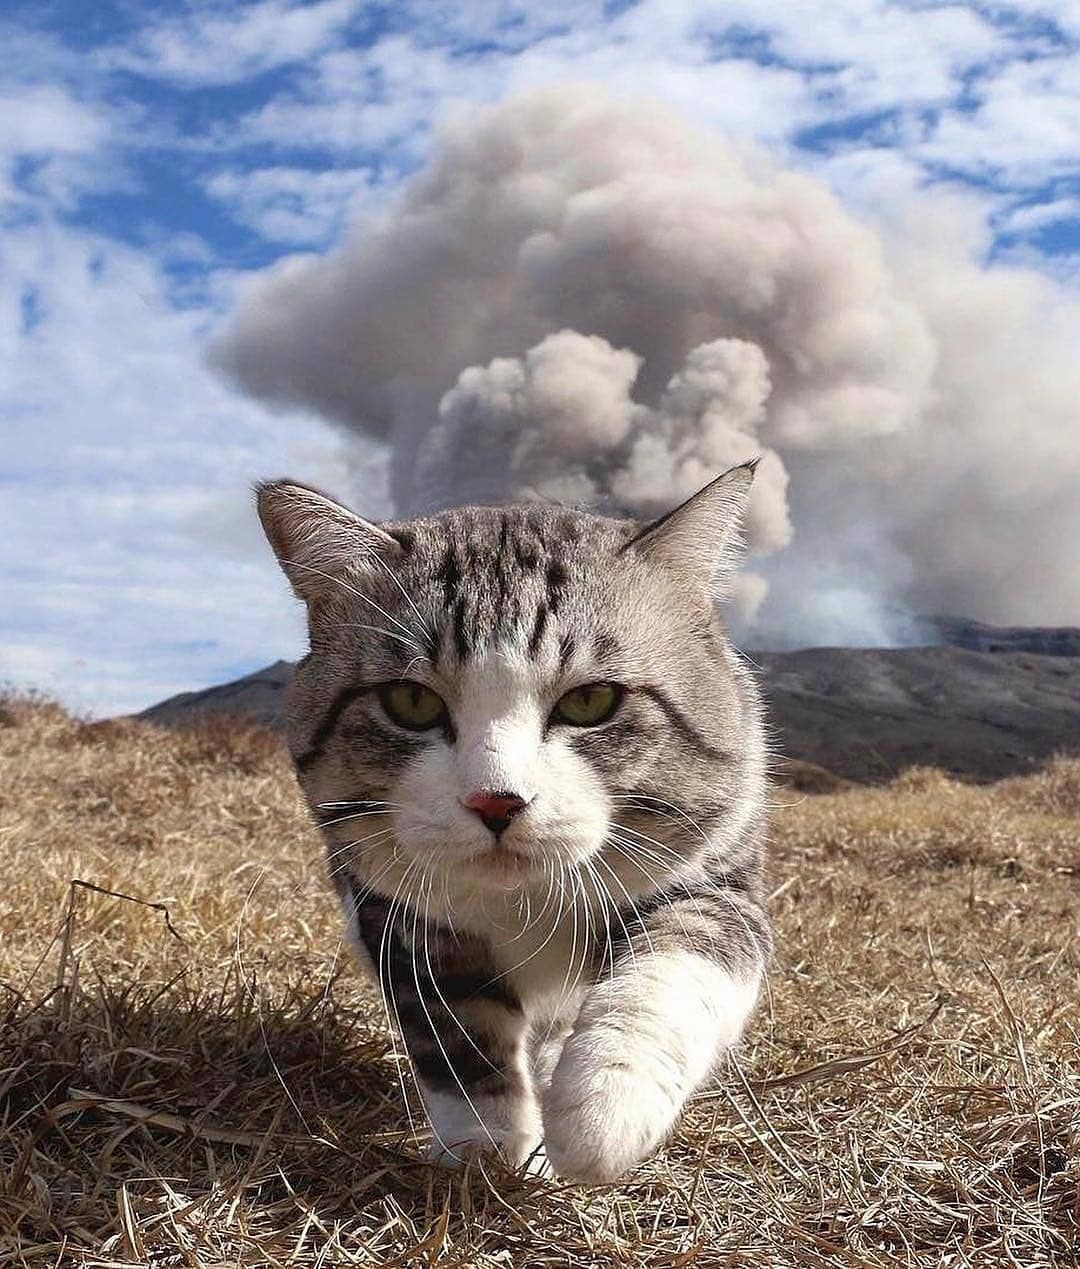 Yankichi The Cat Walking Away From The Erupting Aso Volcano In Japan Photo By Noraneko Nyankichi Animalonplane Cute Cats Photos Animals Cute Cats